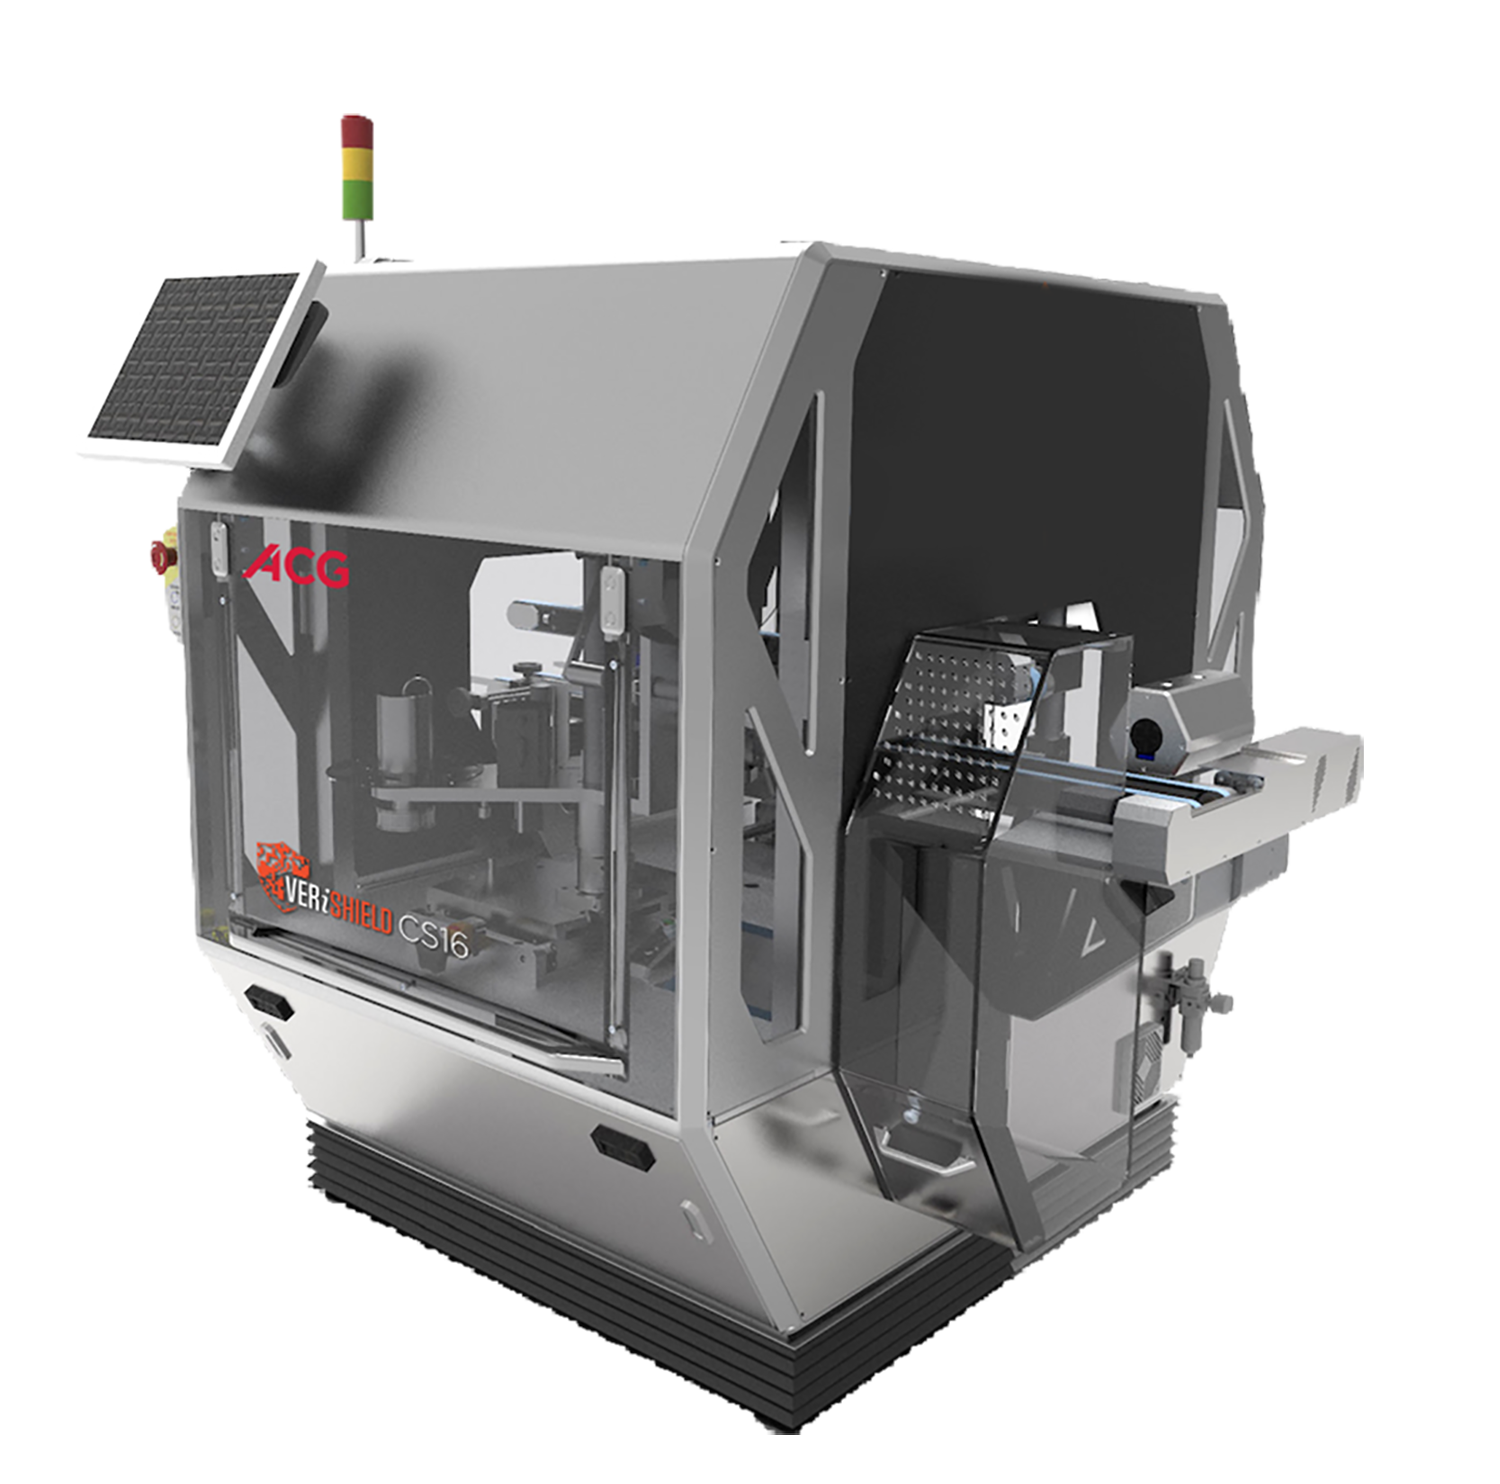 Online carton serialisation system with tamper labelling